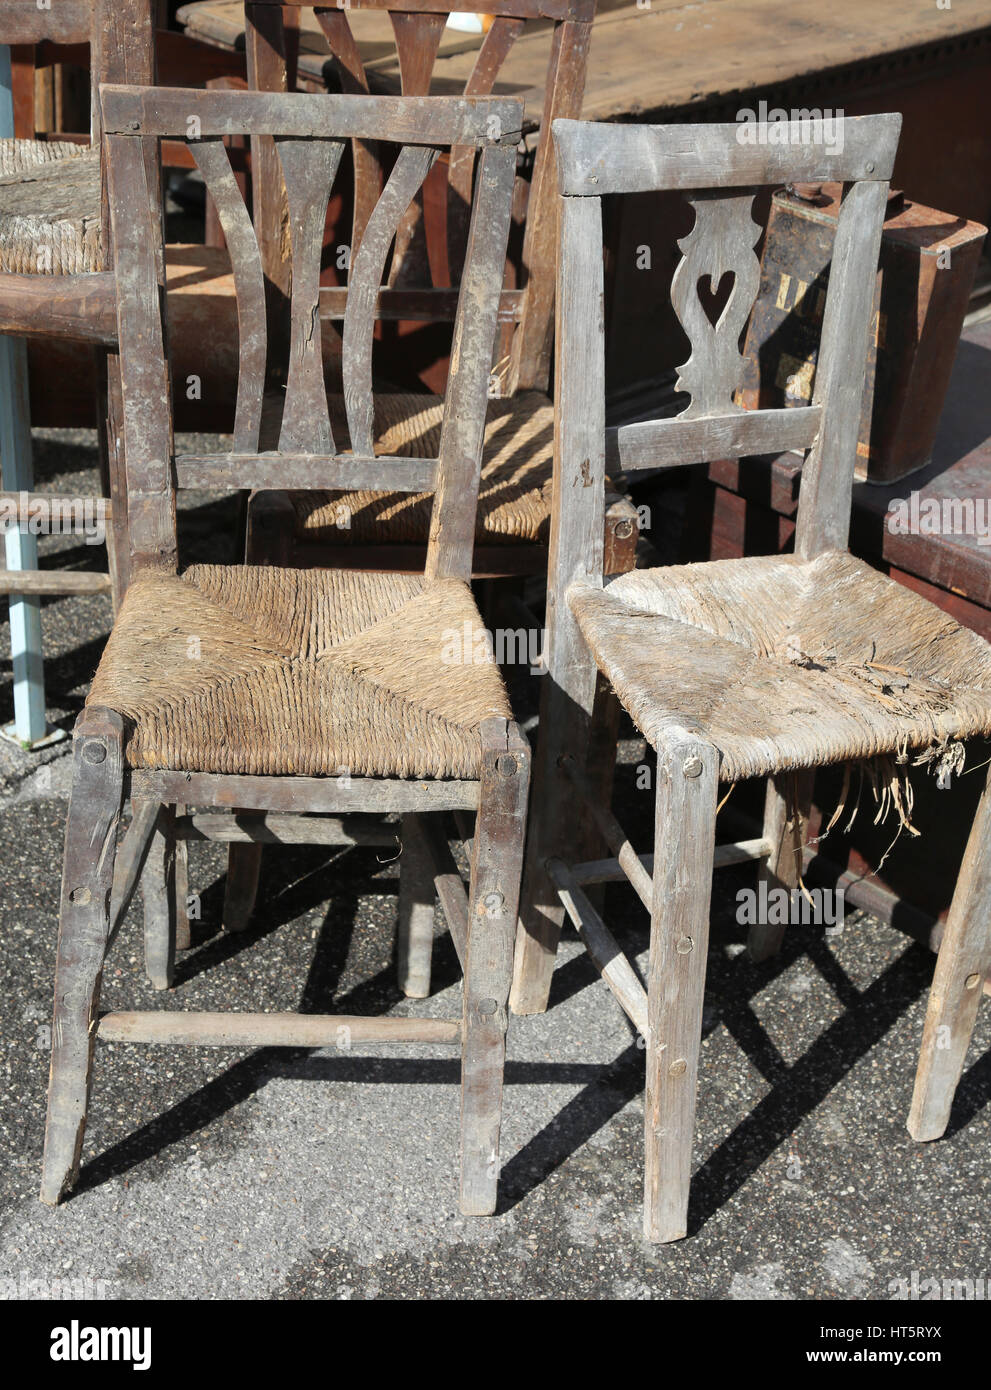 wicker chairs for sale office denver old in the outdoor antiques market stock